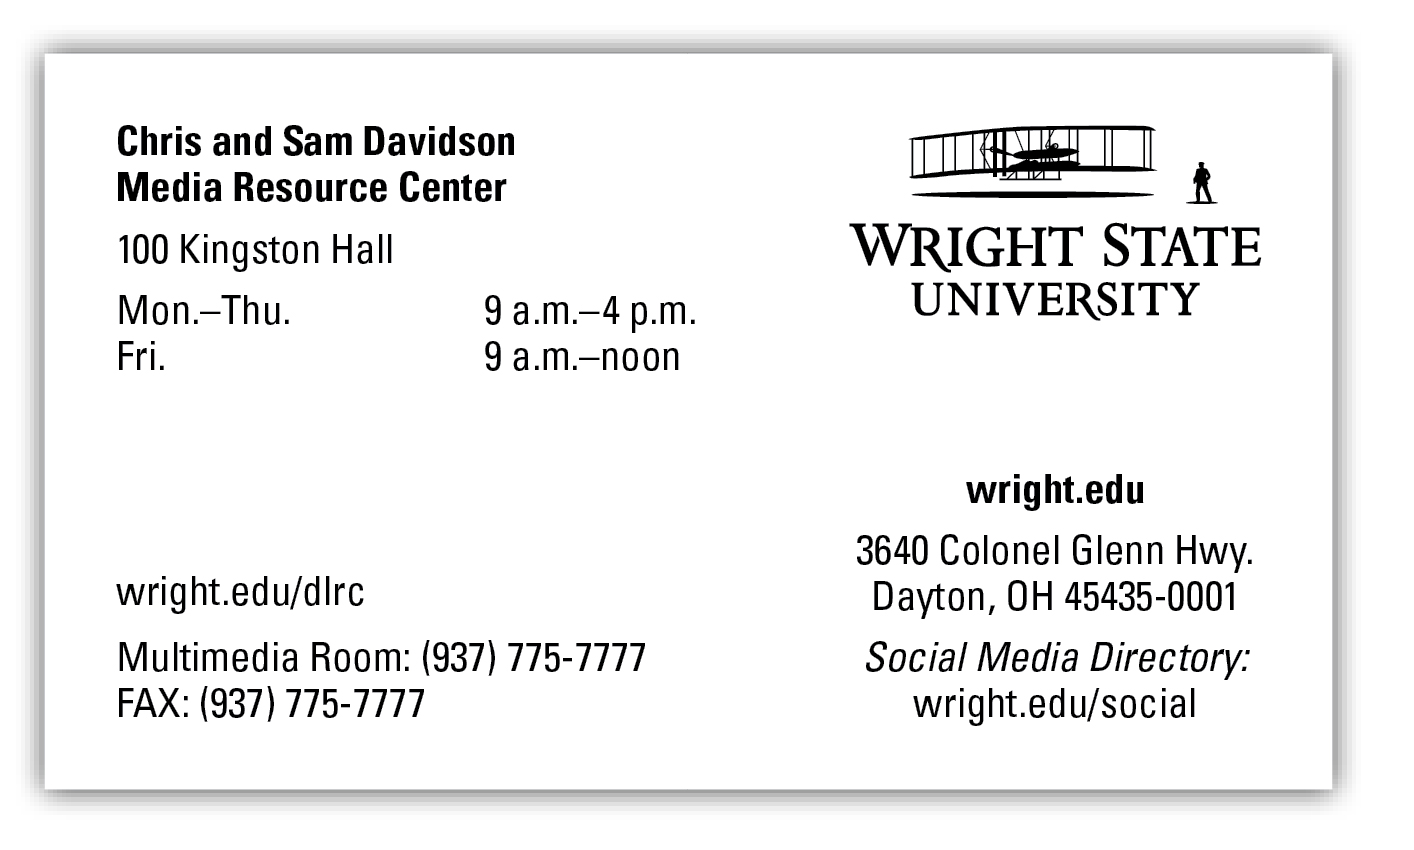 University business card office of marketing wright state university wright state university business card campus template reheart Gallery